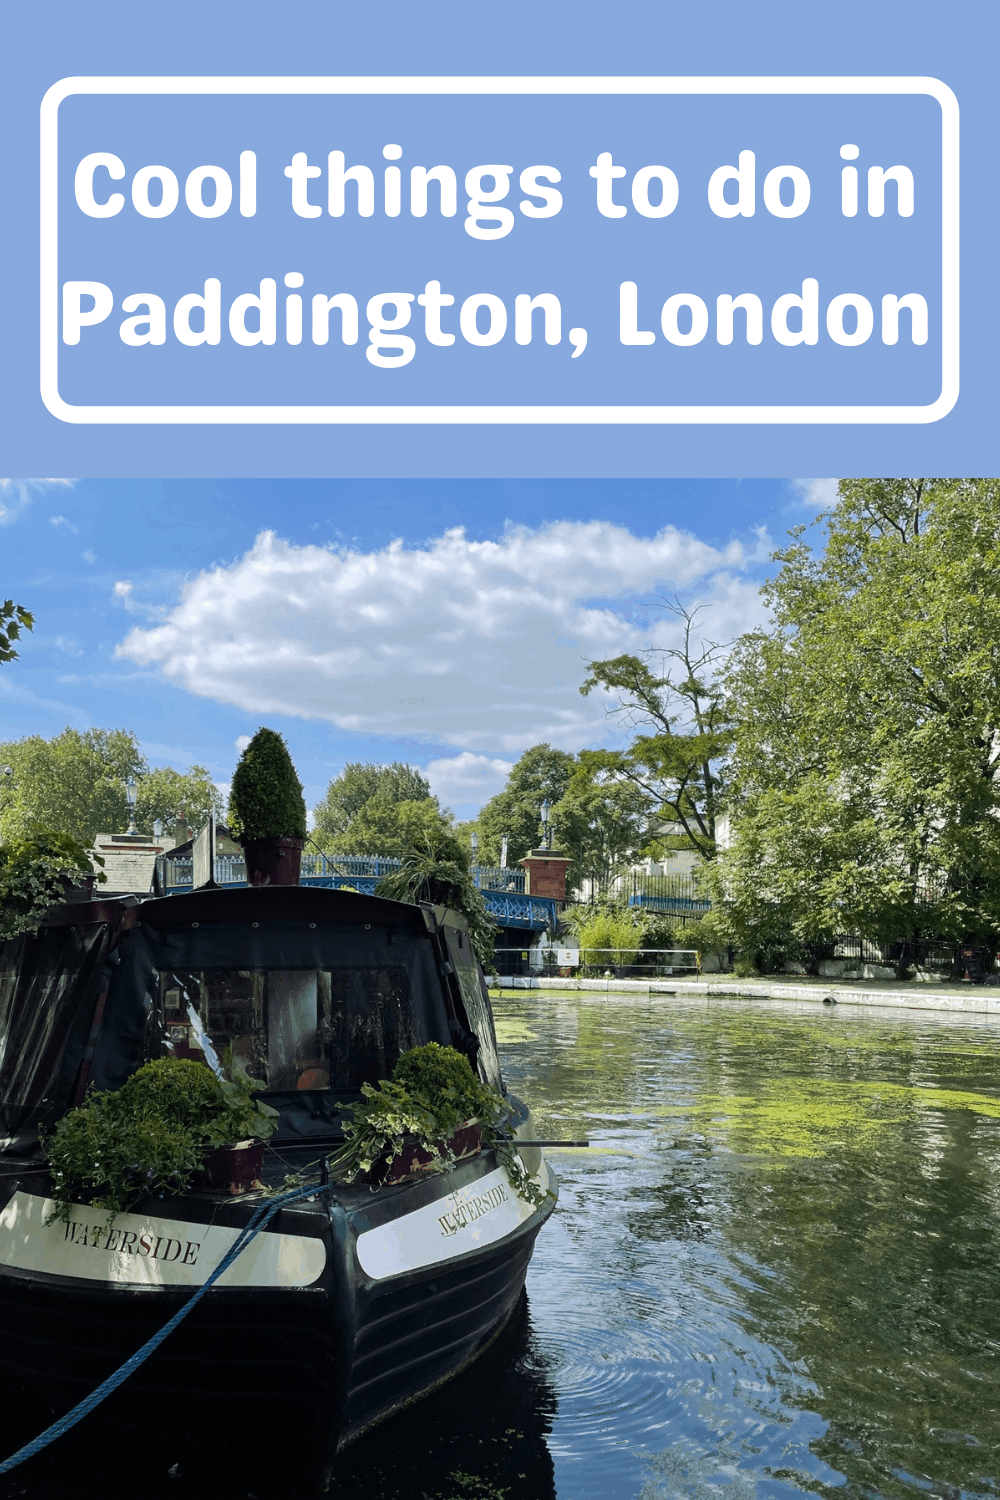 Cool things to do in Paddington, London